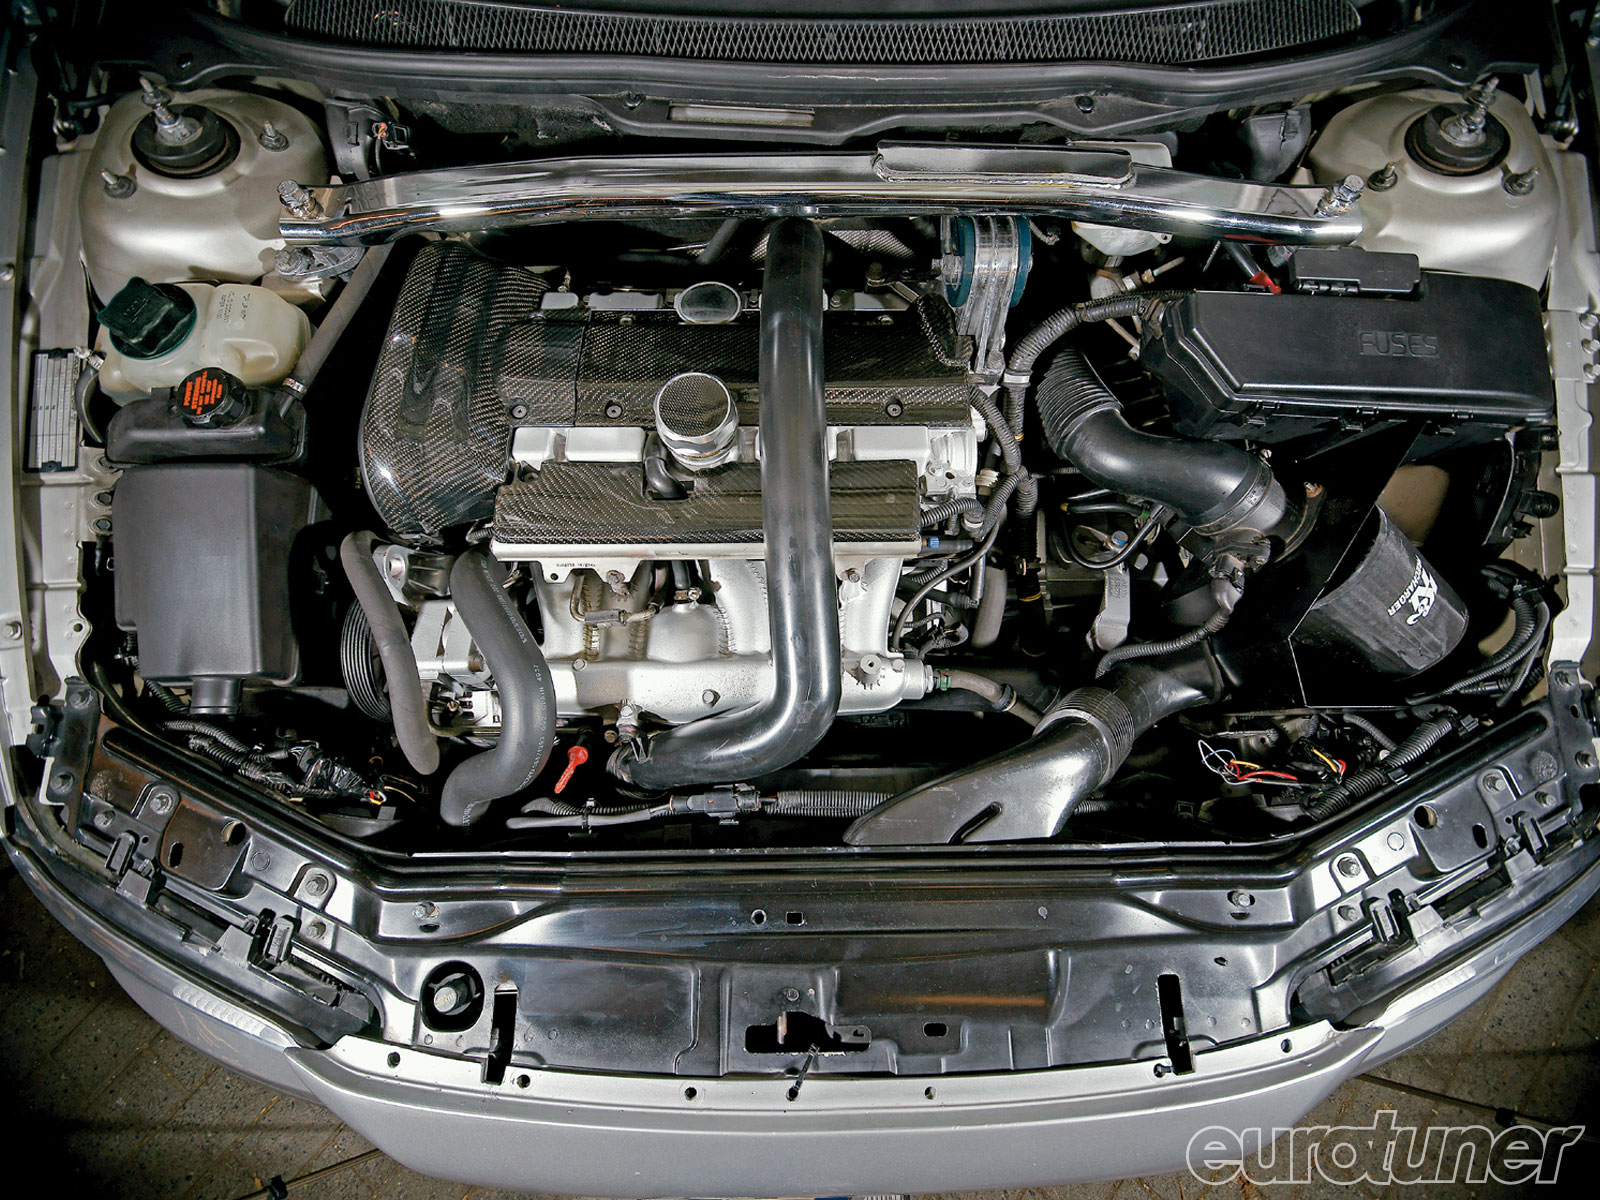 Volvo s60 review and photos volvo s 60 engine pooptronica